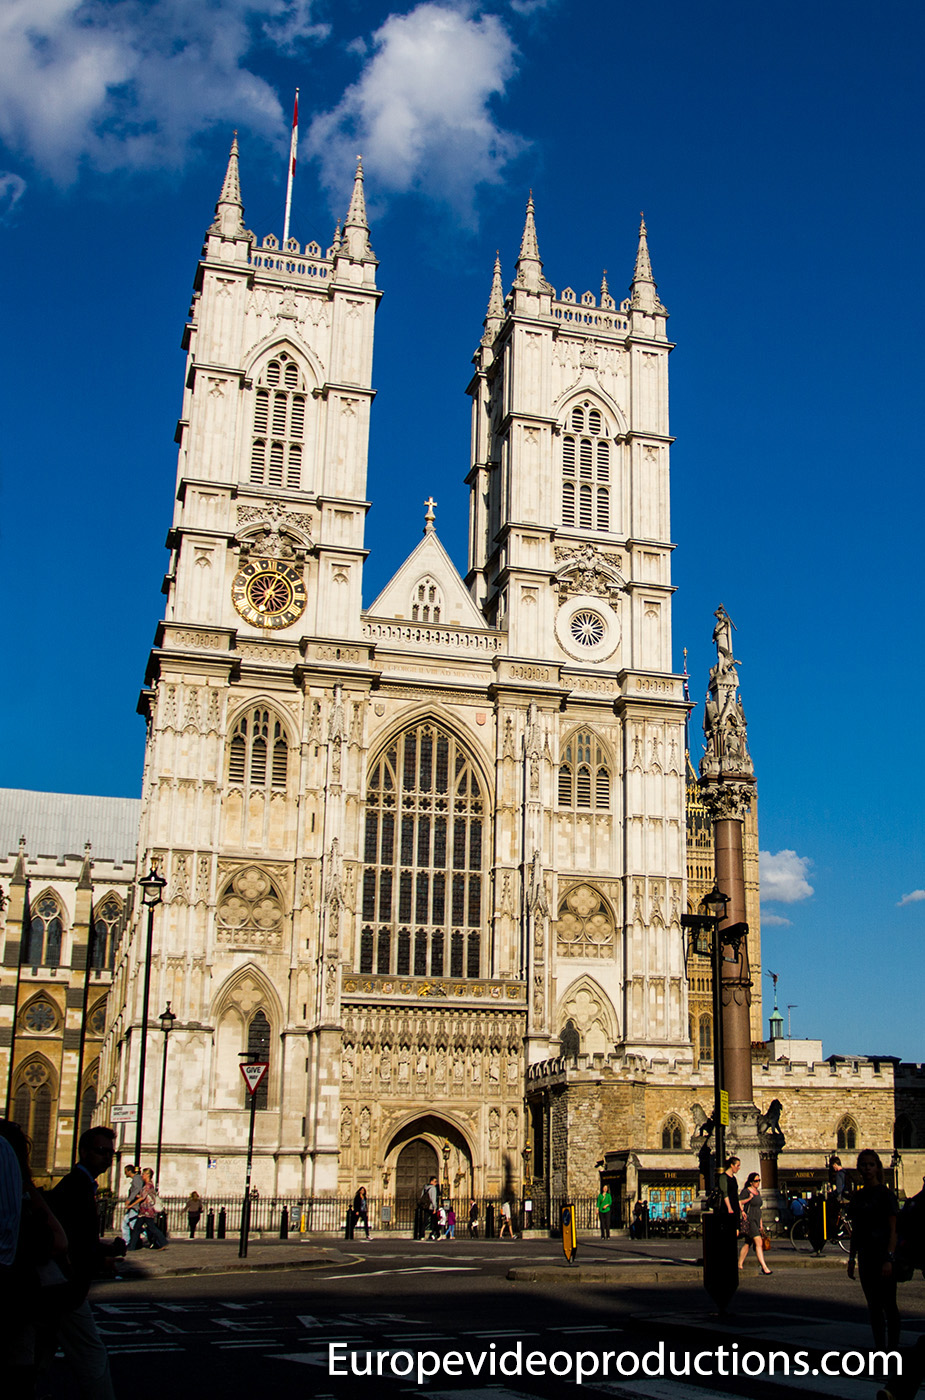 Westminster Abbey in the capital of England, London